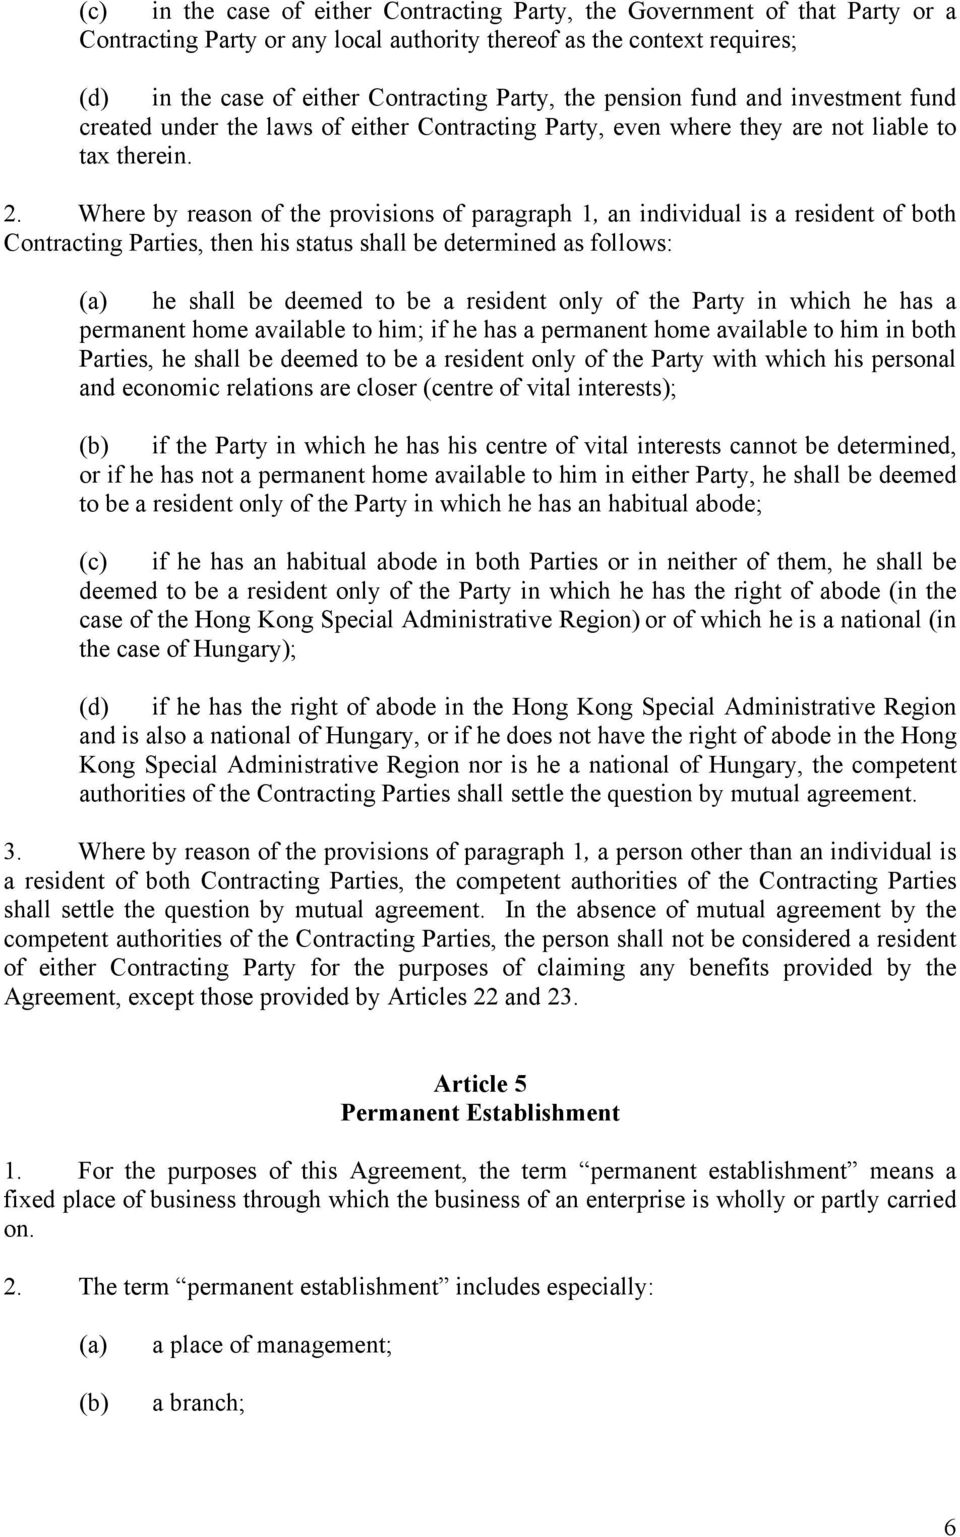 Where by reason of the provisions of paragraph 1, an individual is a resident of both Contracting Parties, then his status shall be determined as follows: he shall be deemed to be a resident only of